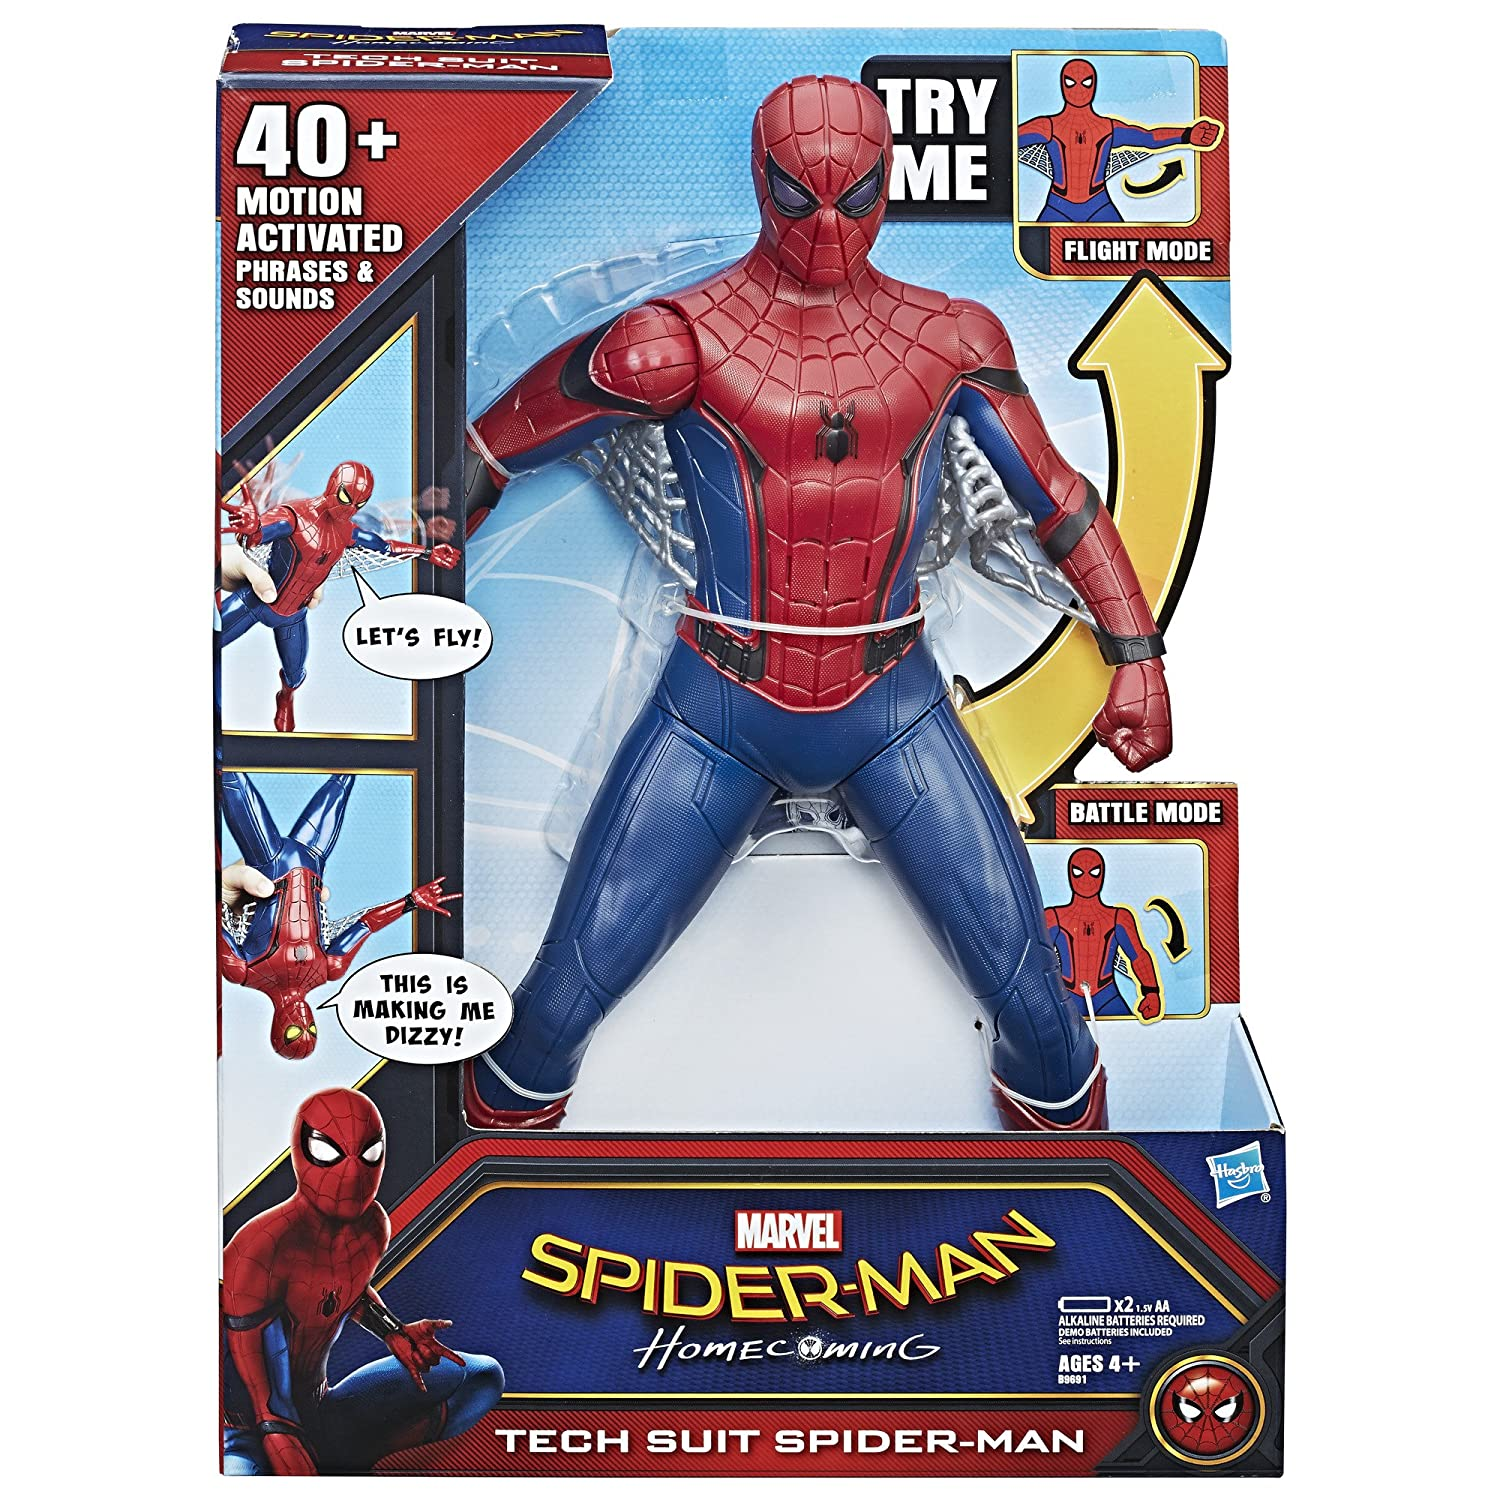 3837c48fa6b Amazon.com: Spider-Man: Homecoming Tech Suit Spider-Man,15 inches: Toys &  Games